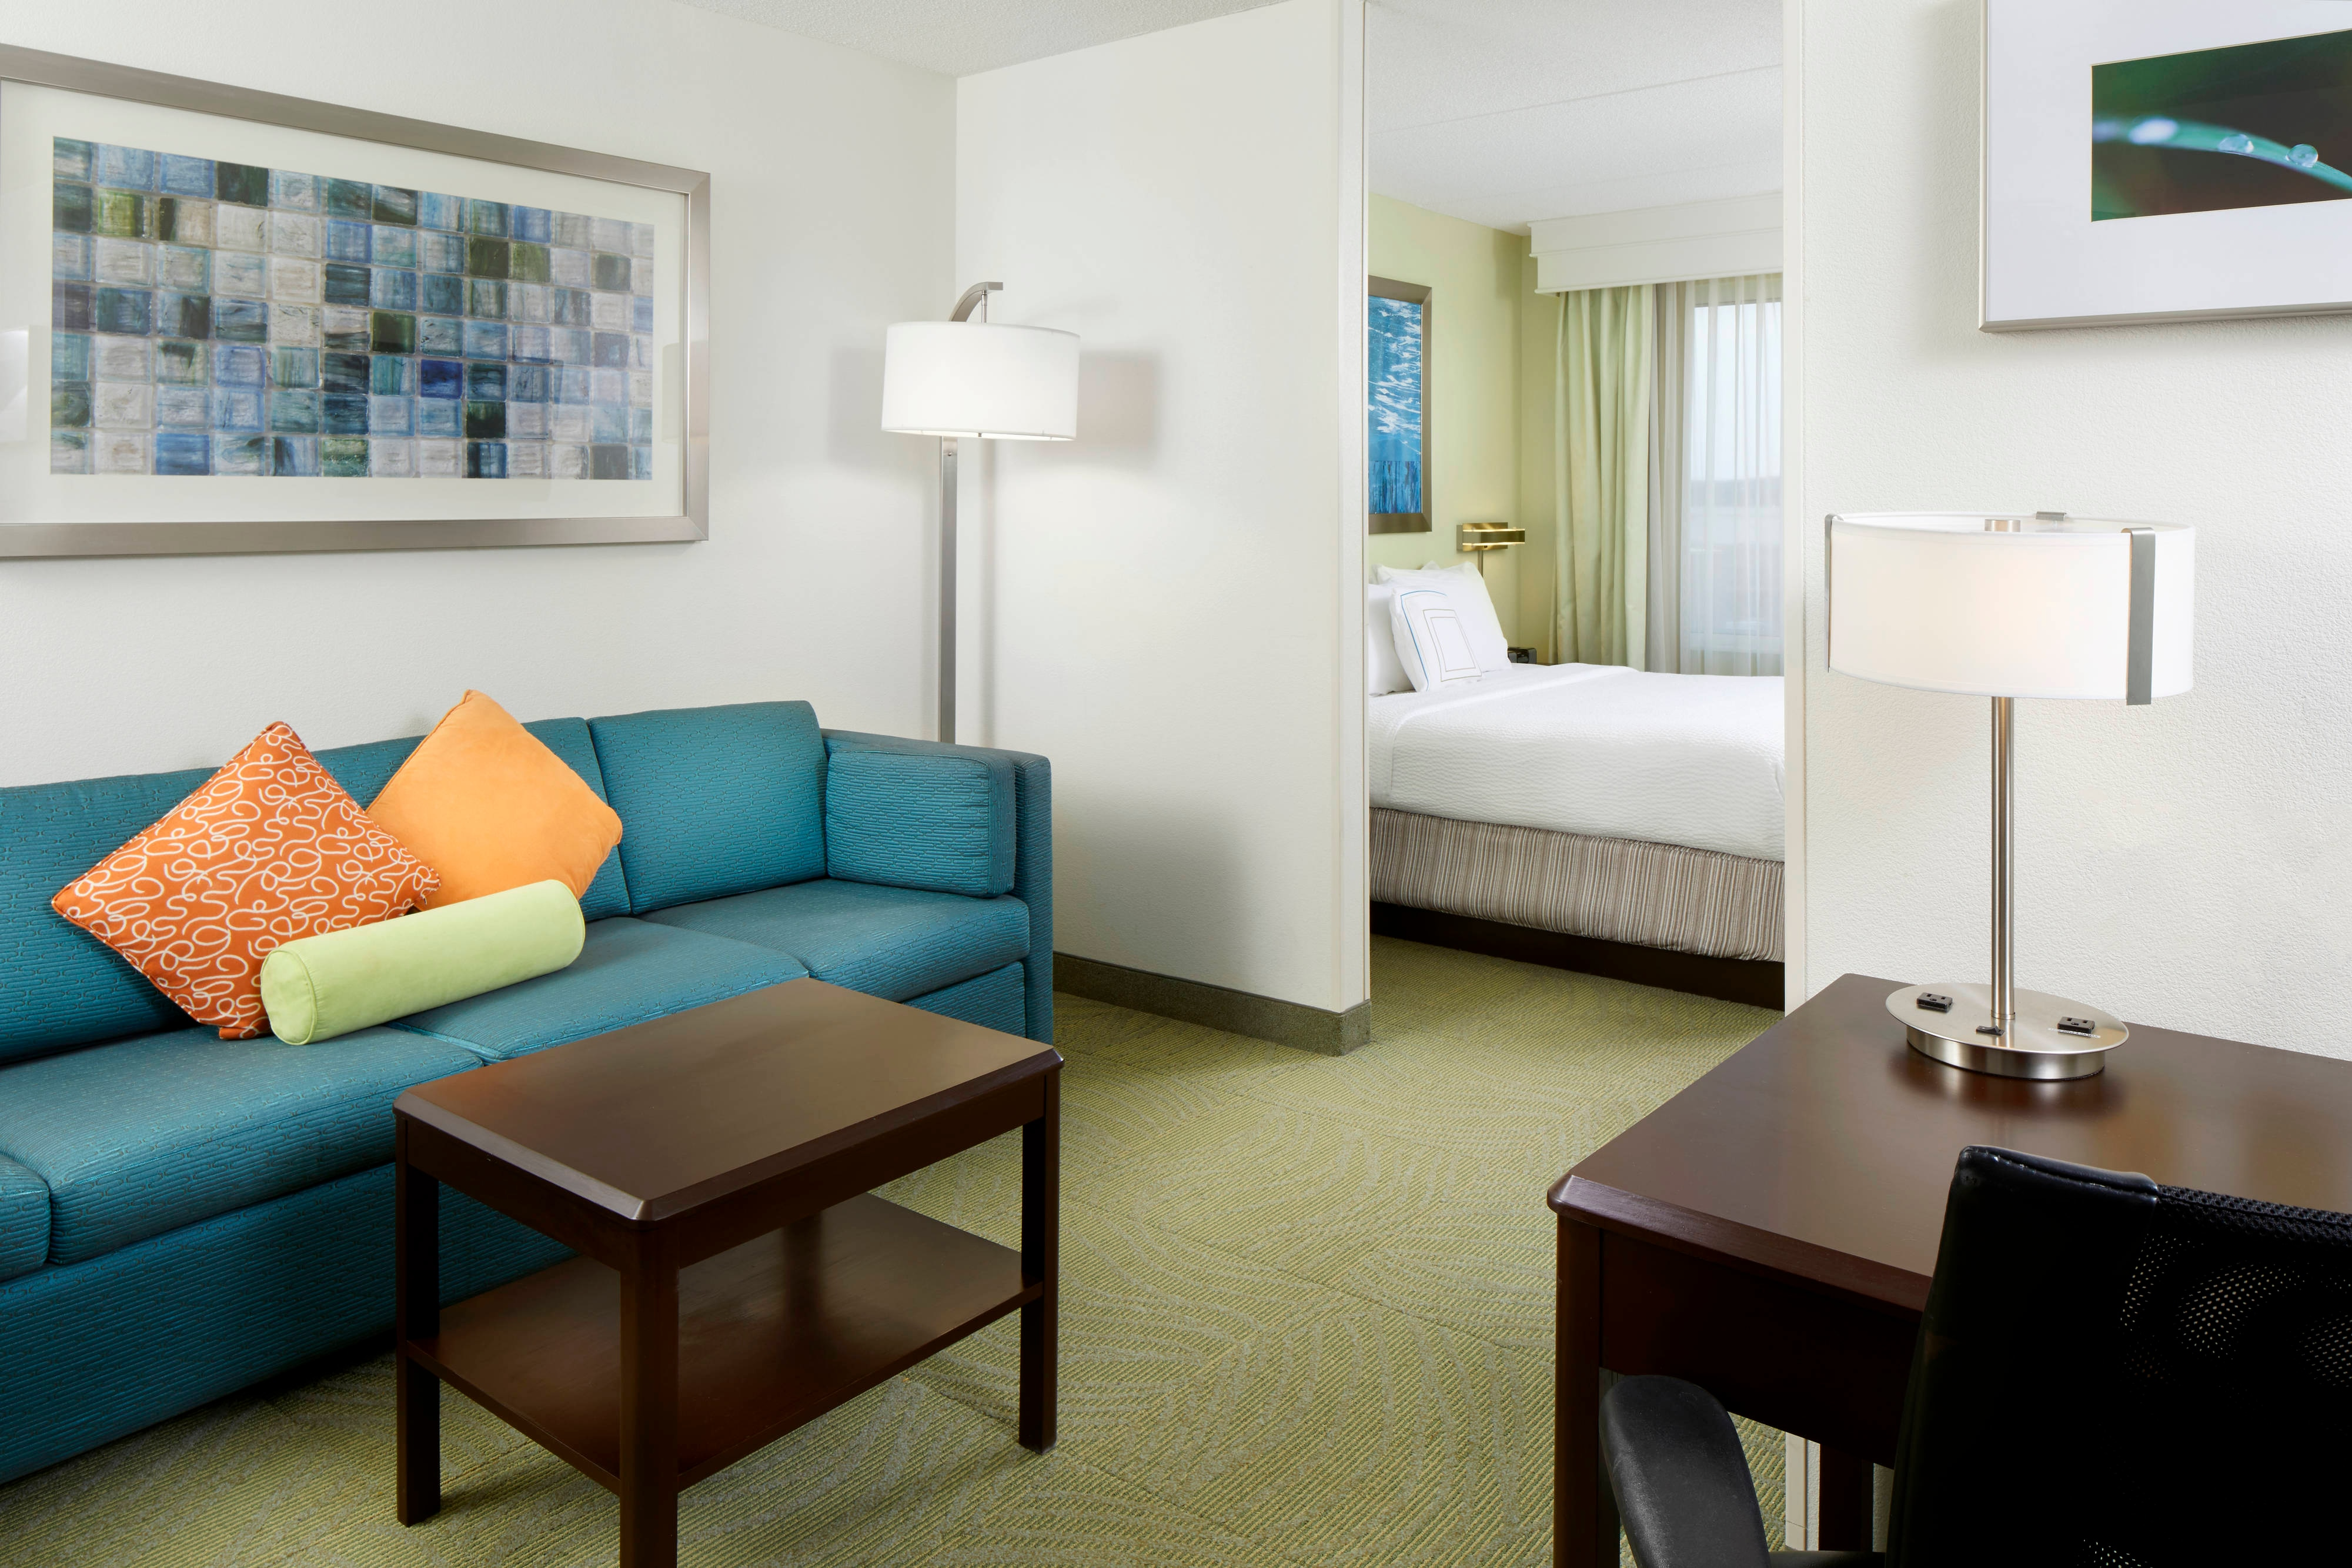 Hotel Accommodations Near Pittsburgh International Airport Springhill Suites